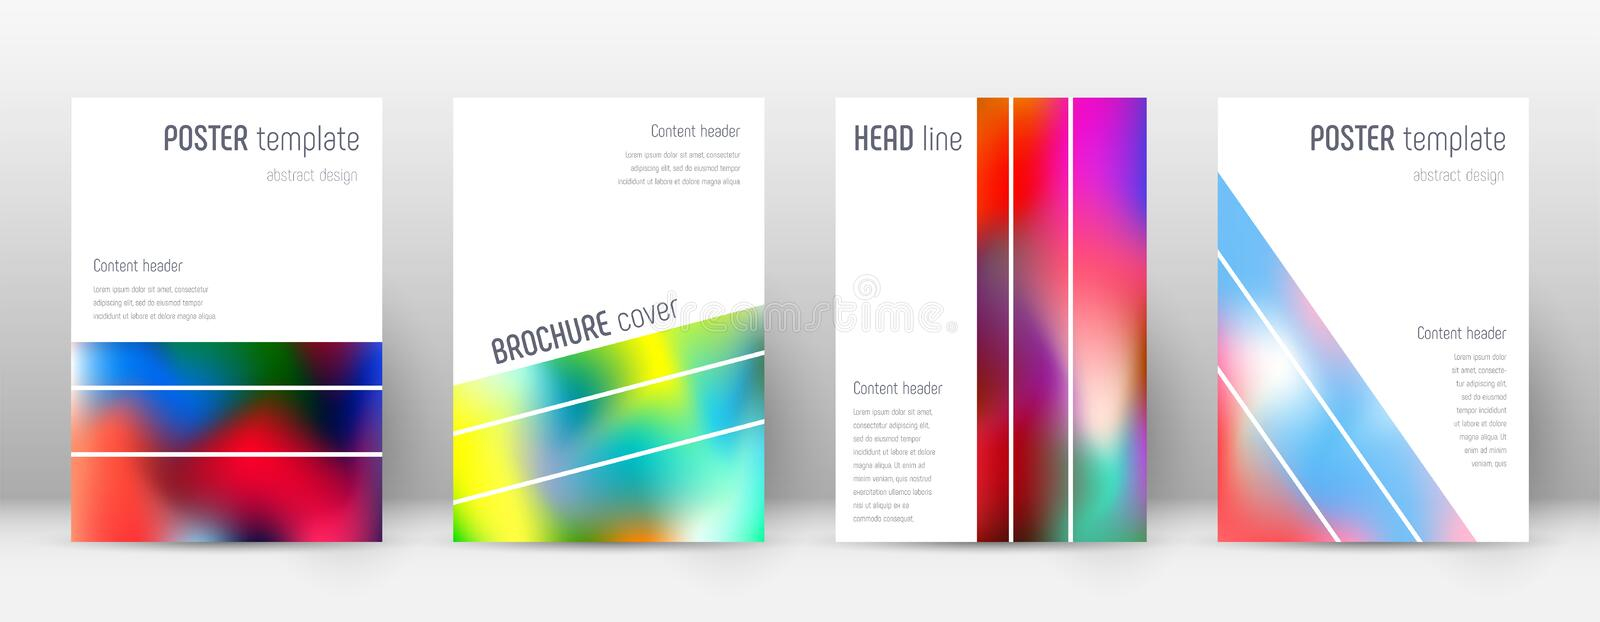 Flyer layout. Geometric beauteous template for Brochure, Annual Report, Magazine, Poster, Corporate Presentation, Portfolio, Flyer. Alluring colorful cover stock illustration